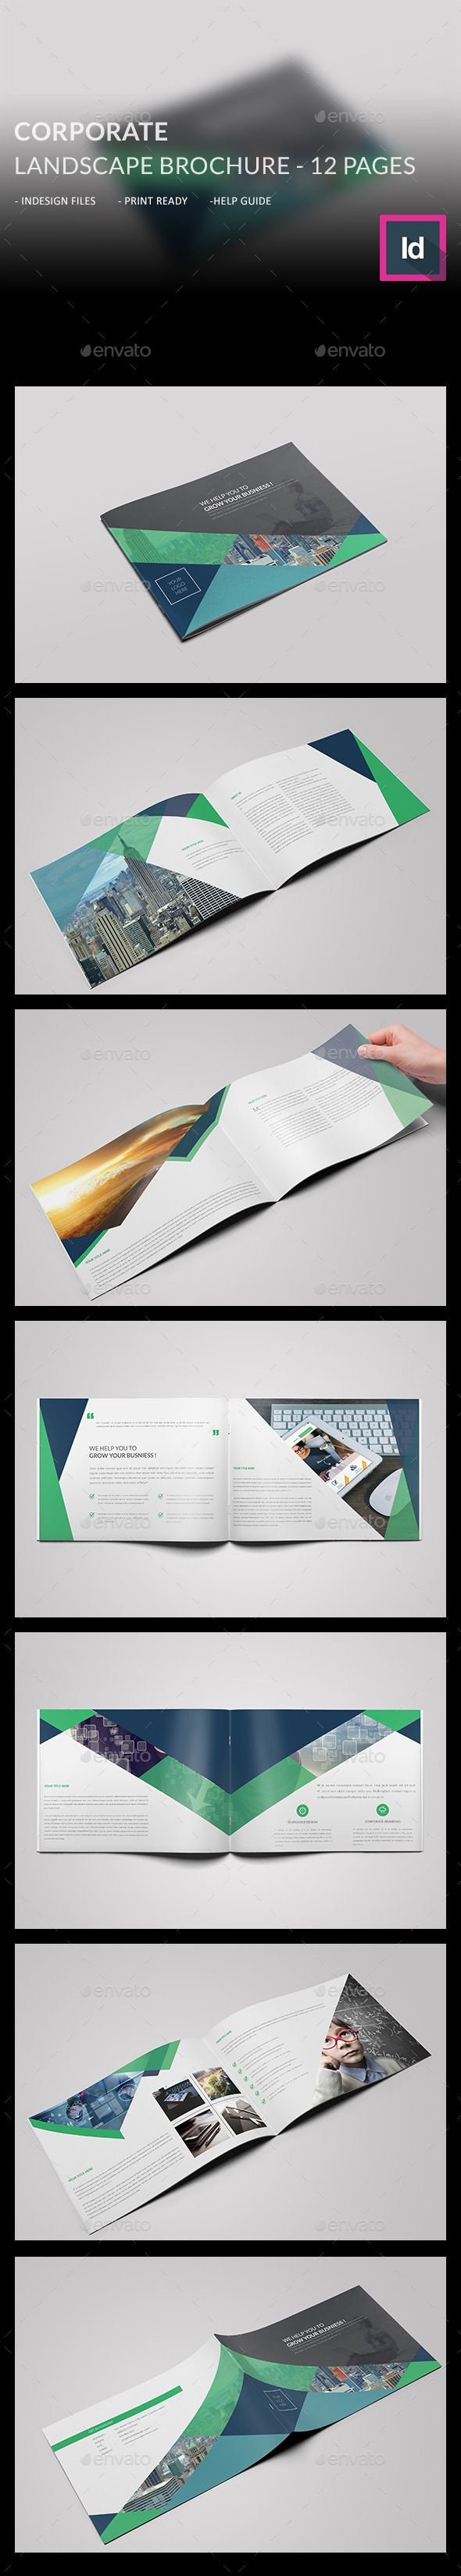 21 best Briefpapier images on Pinterest | Writing paper, Brand ...